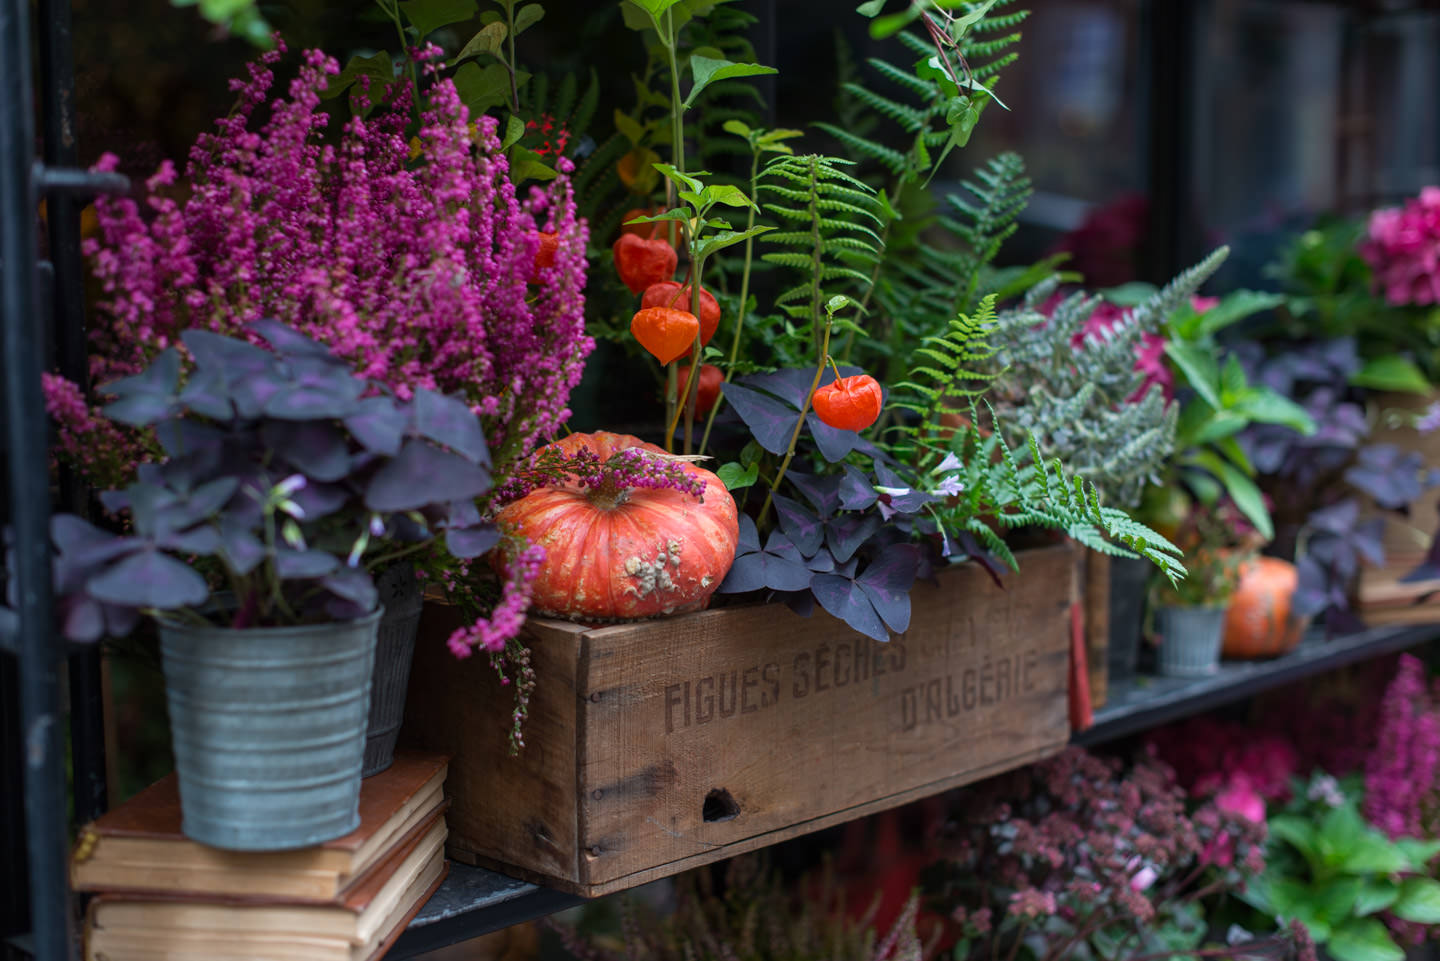 Blog-Mode-And-the-City-5-Petites-choses- Fleuriste-automne